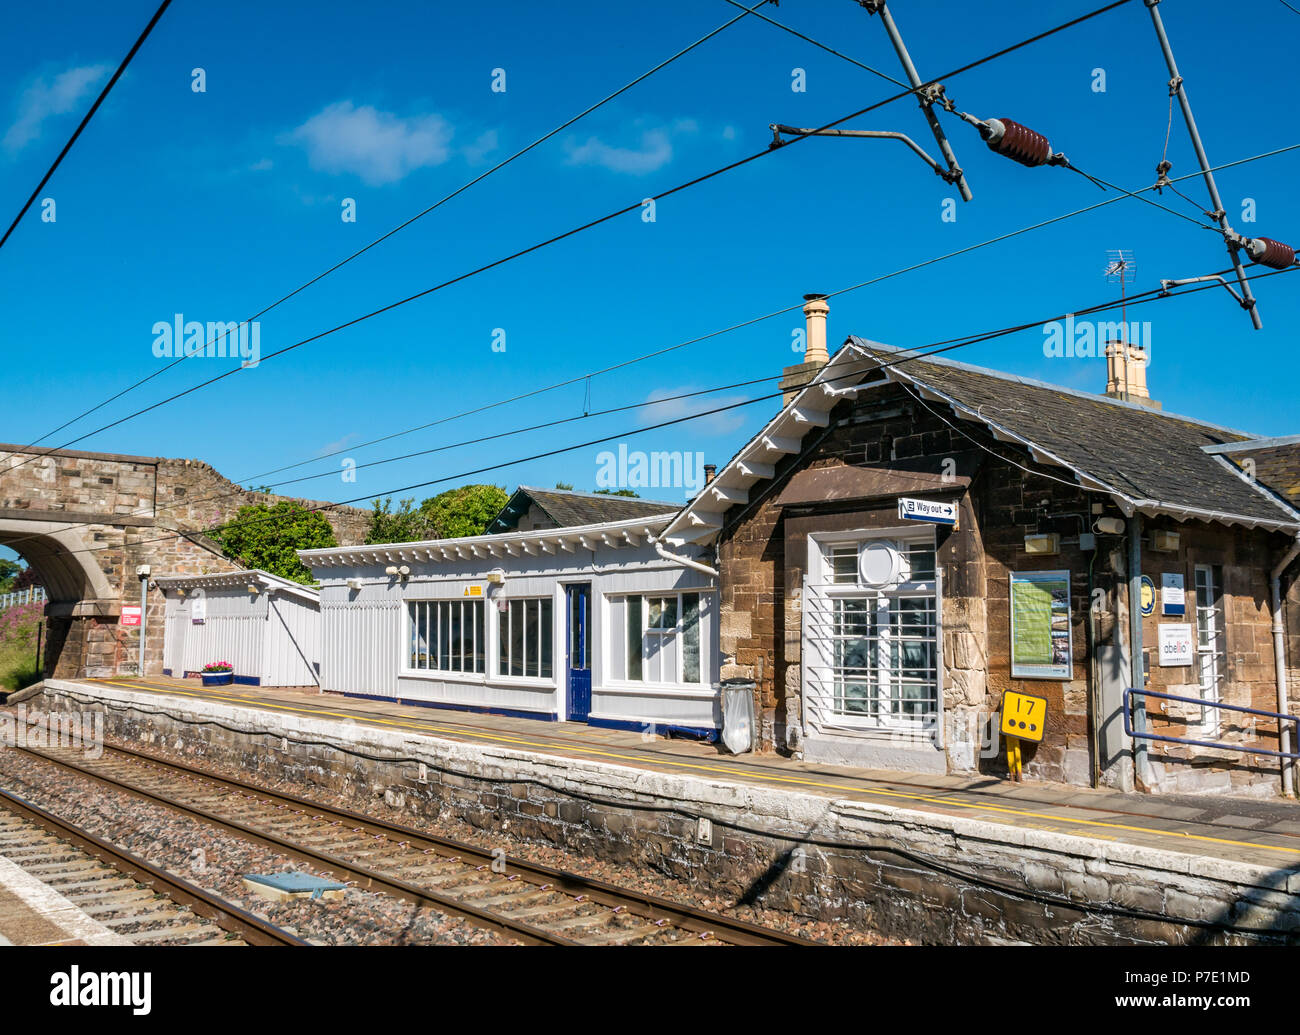 Rural train station platform with quaint waiting room on Summer day with blue sky, Drem Railway station, East Lothian, Scotland, UK - Stock Image